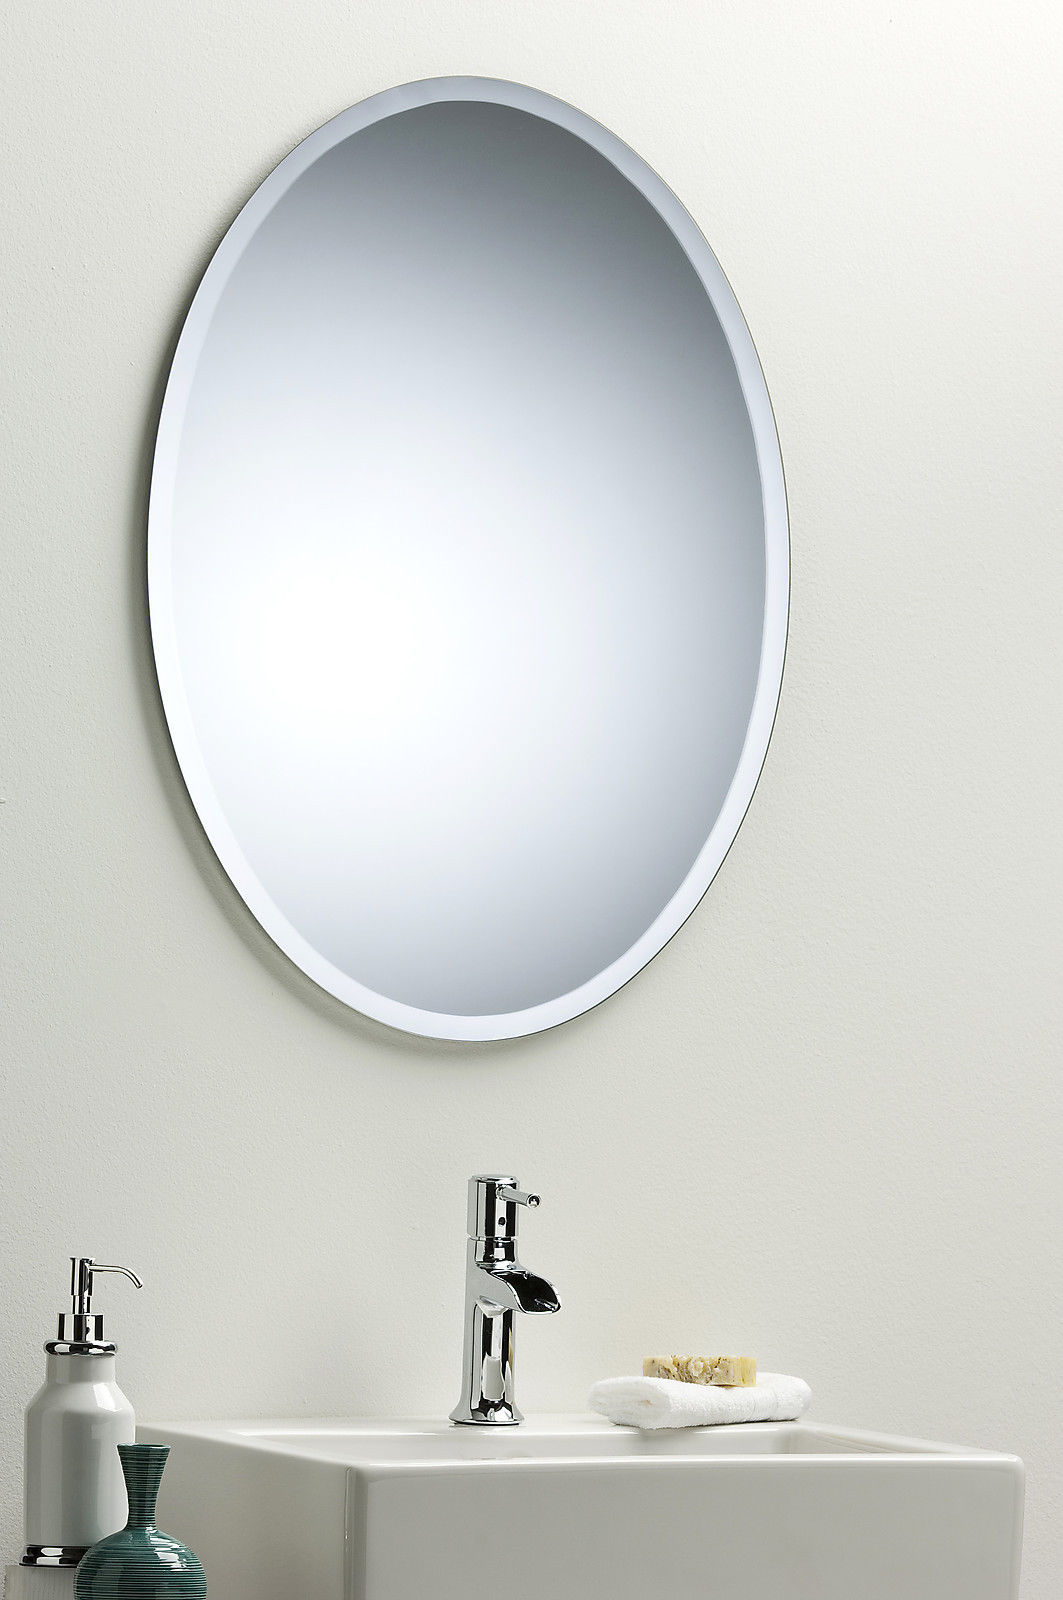 bathroom wall mirror modern stylish oval with bevel